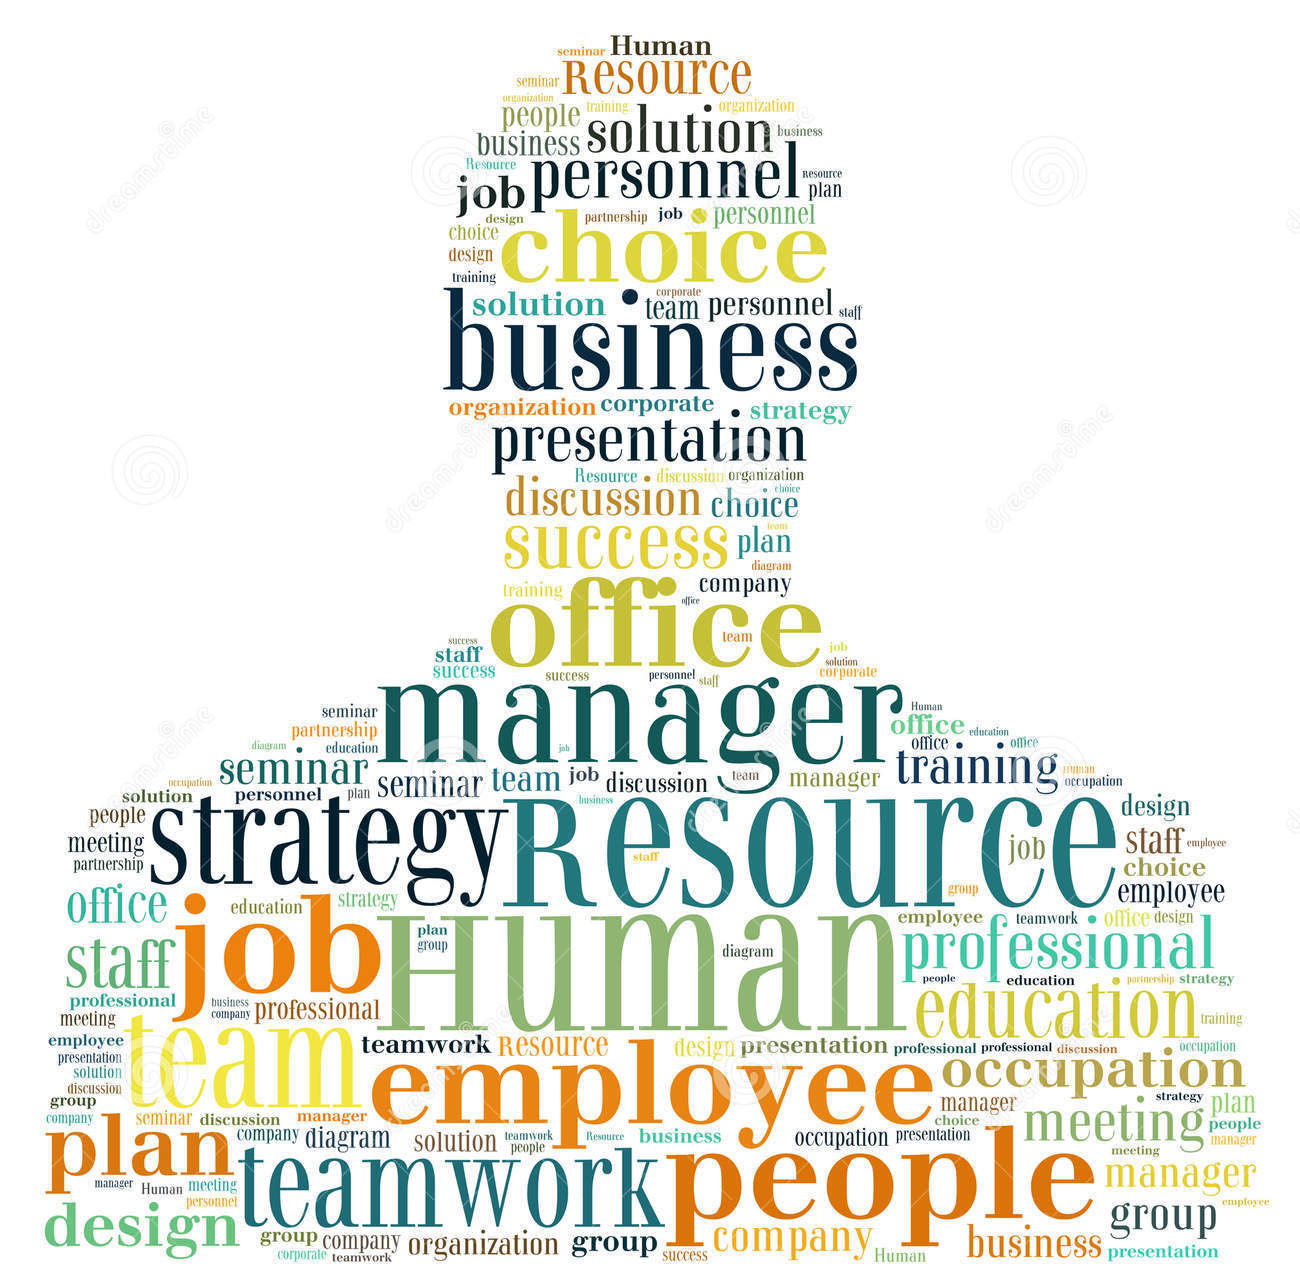 Human Resource Management Examples